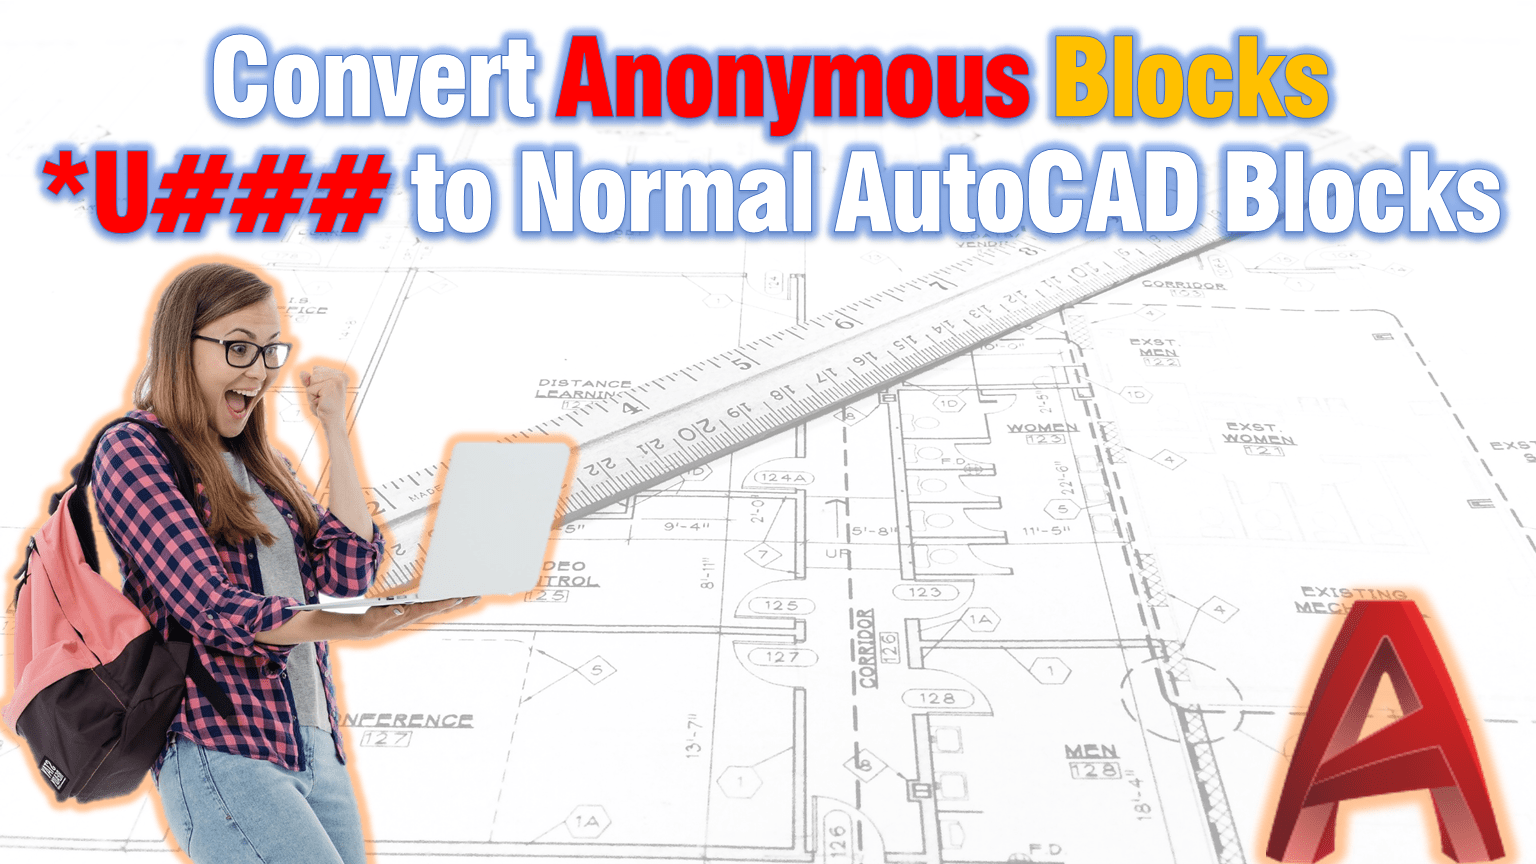 *U### Block to normal AutoCAD Block